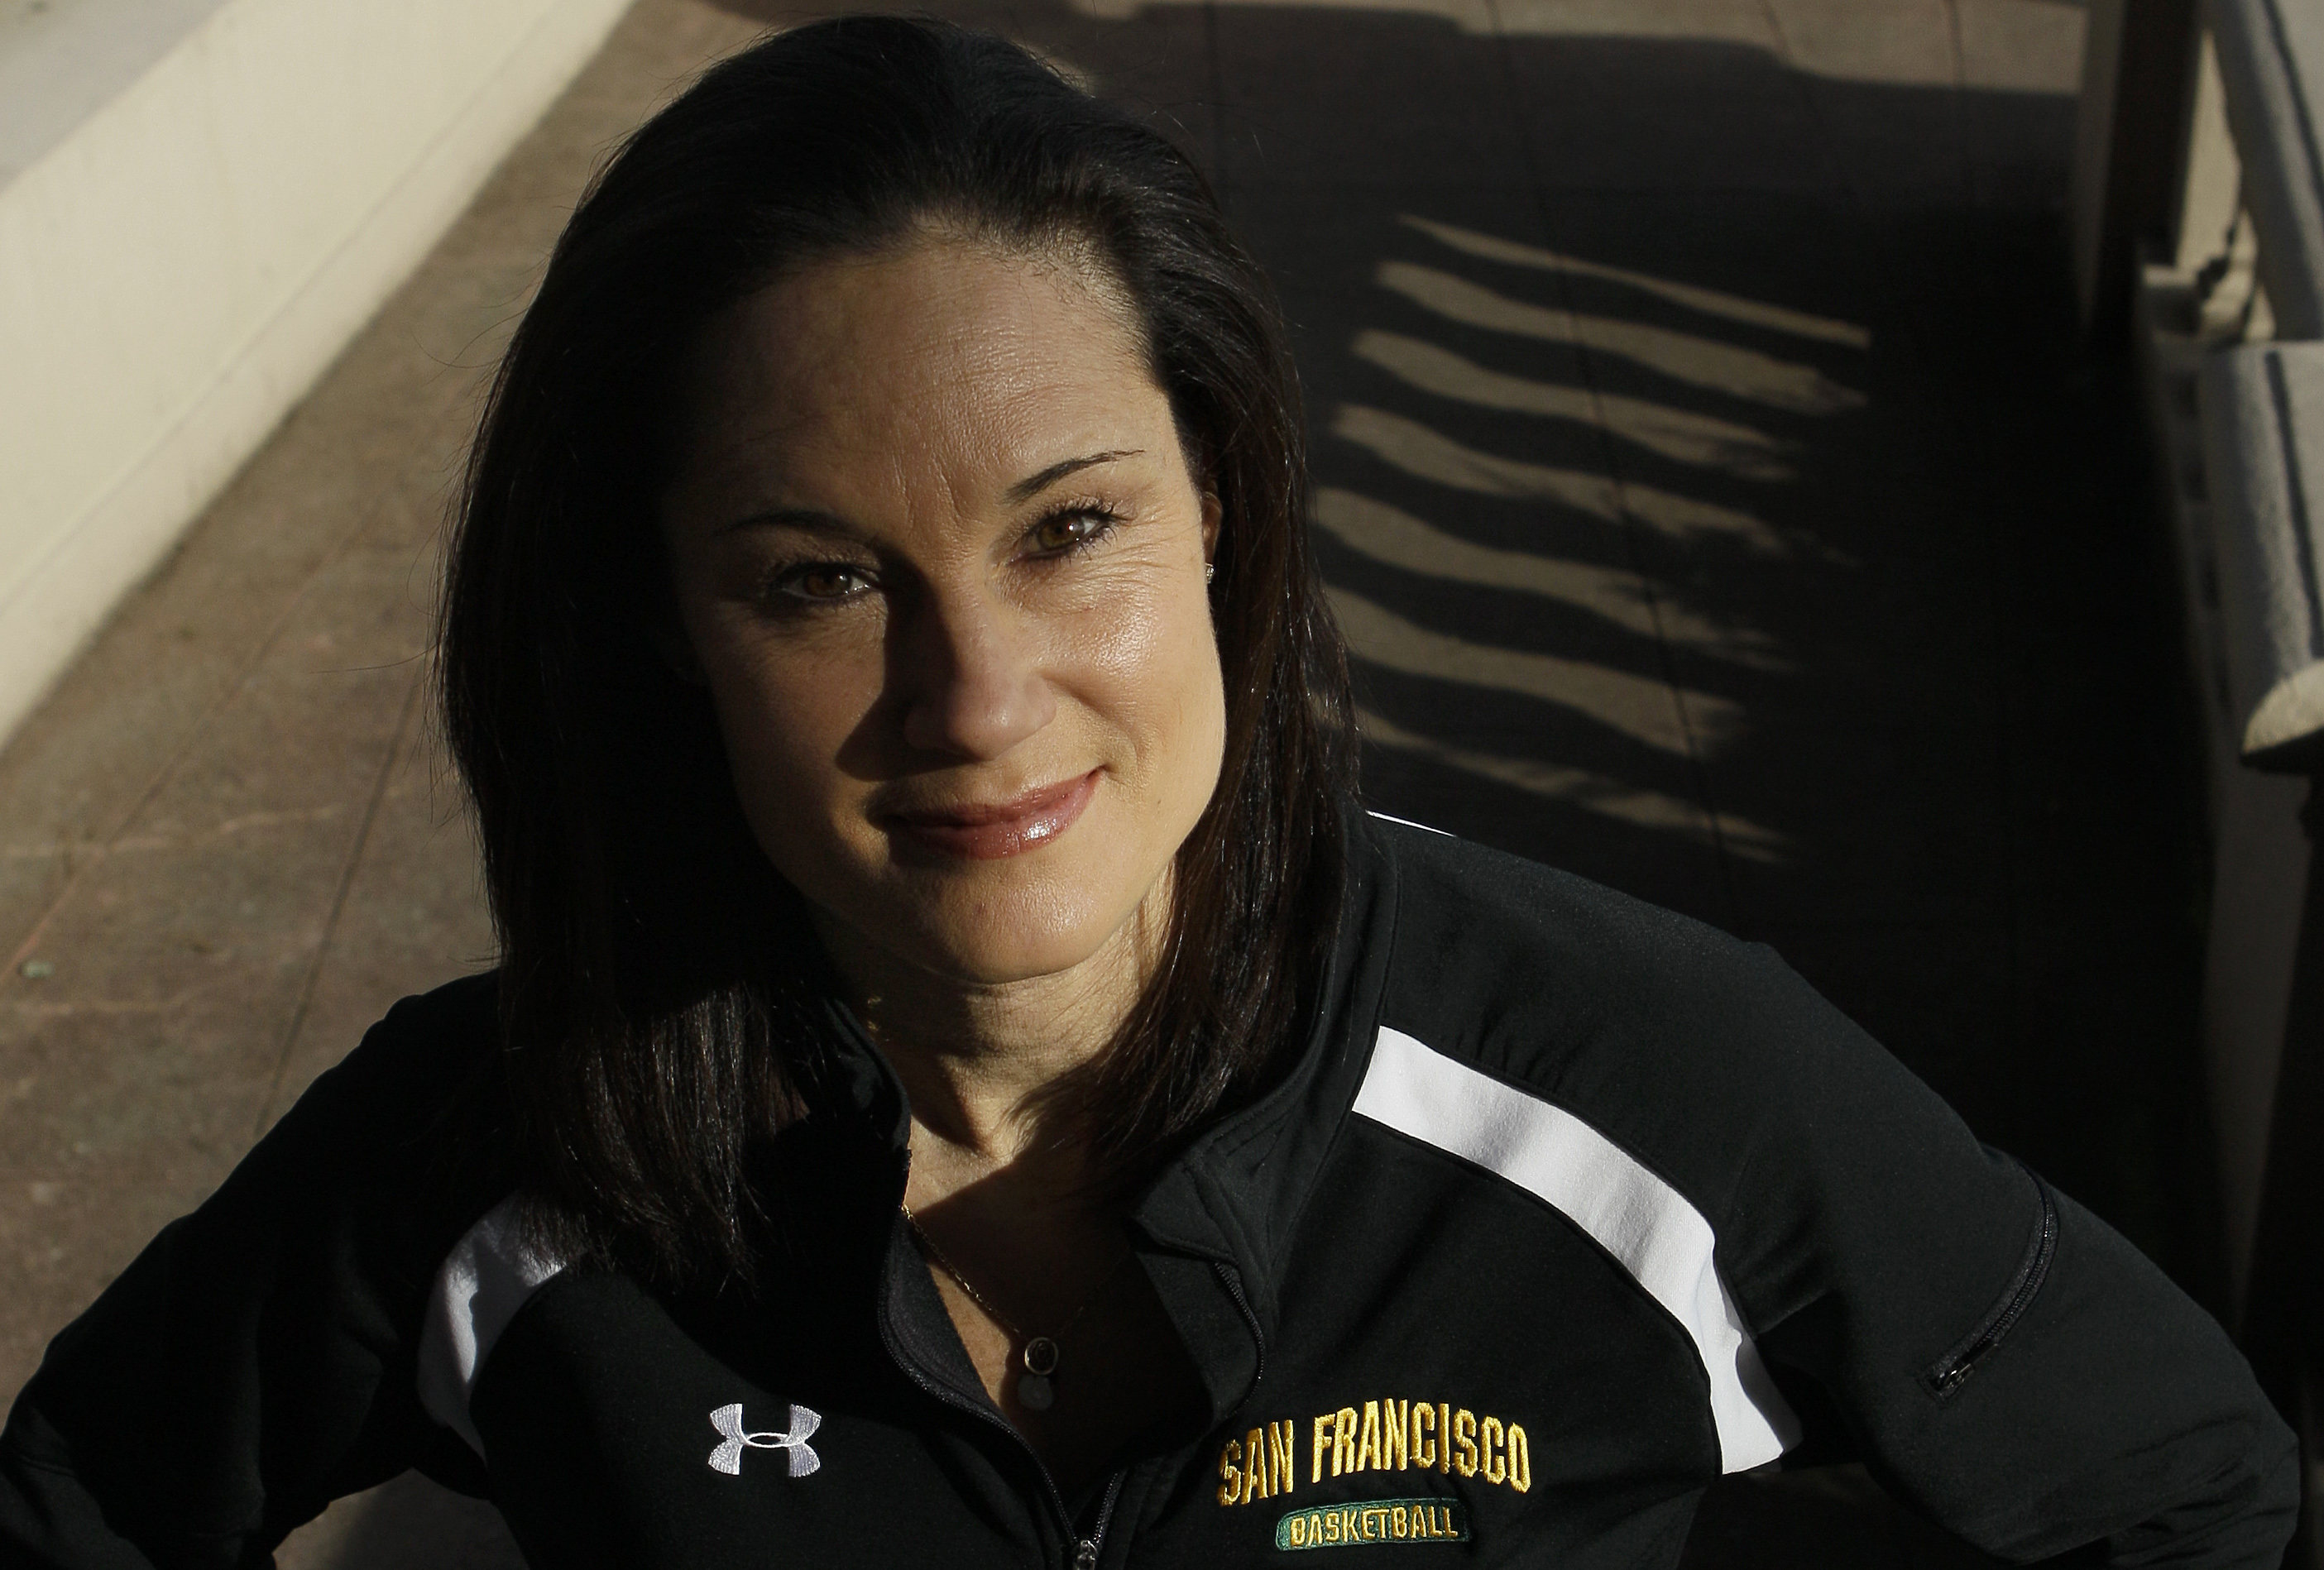 This photo made Dec. 17, 2010, shows San Francisco women's basketball coach Jennifer Azzi posing on the campus in San Francisco, Friday, Dec. 17, 2010. The 42-year-old Azzi could have coached many times over the years at various levels, but it never felt